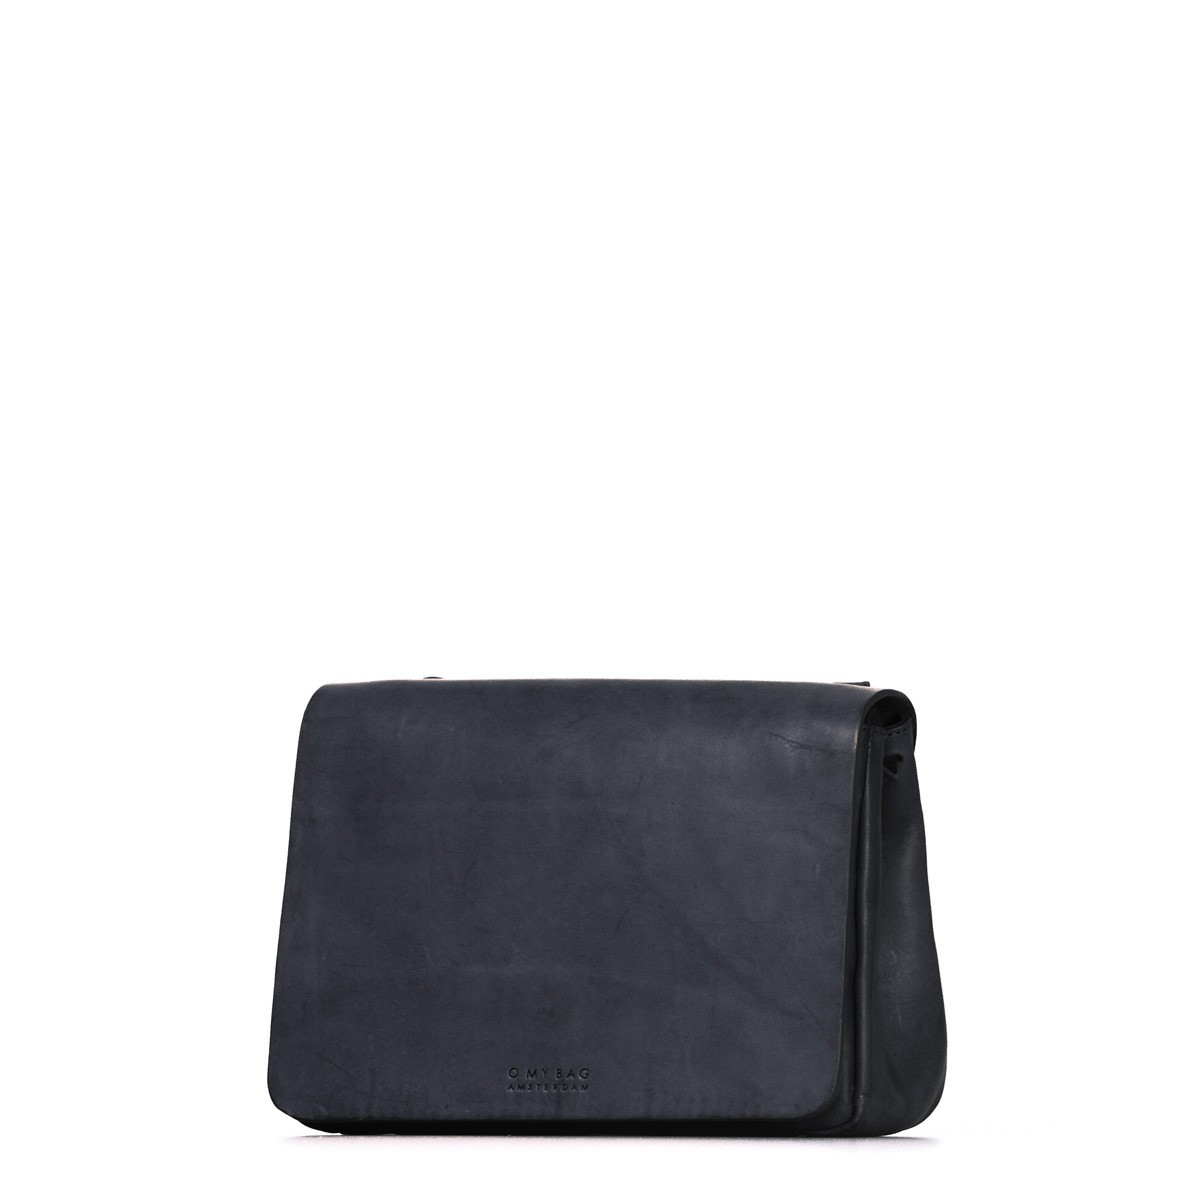 THE LUCY Eco-Classic Black